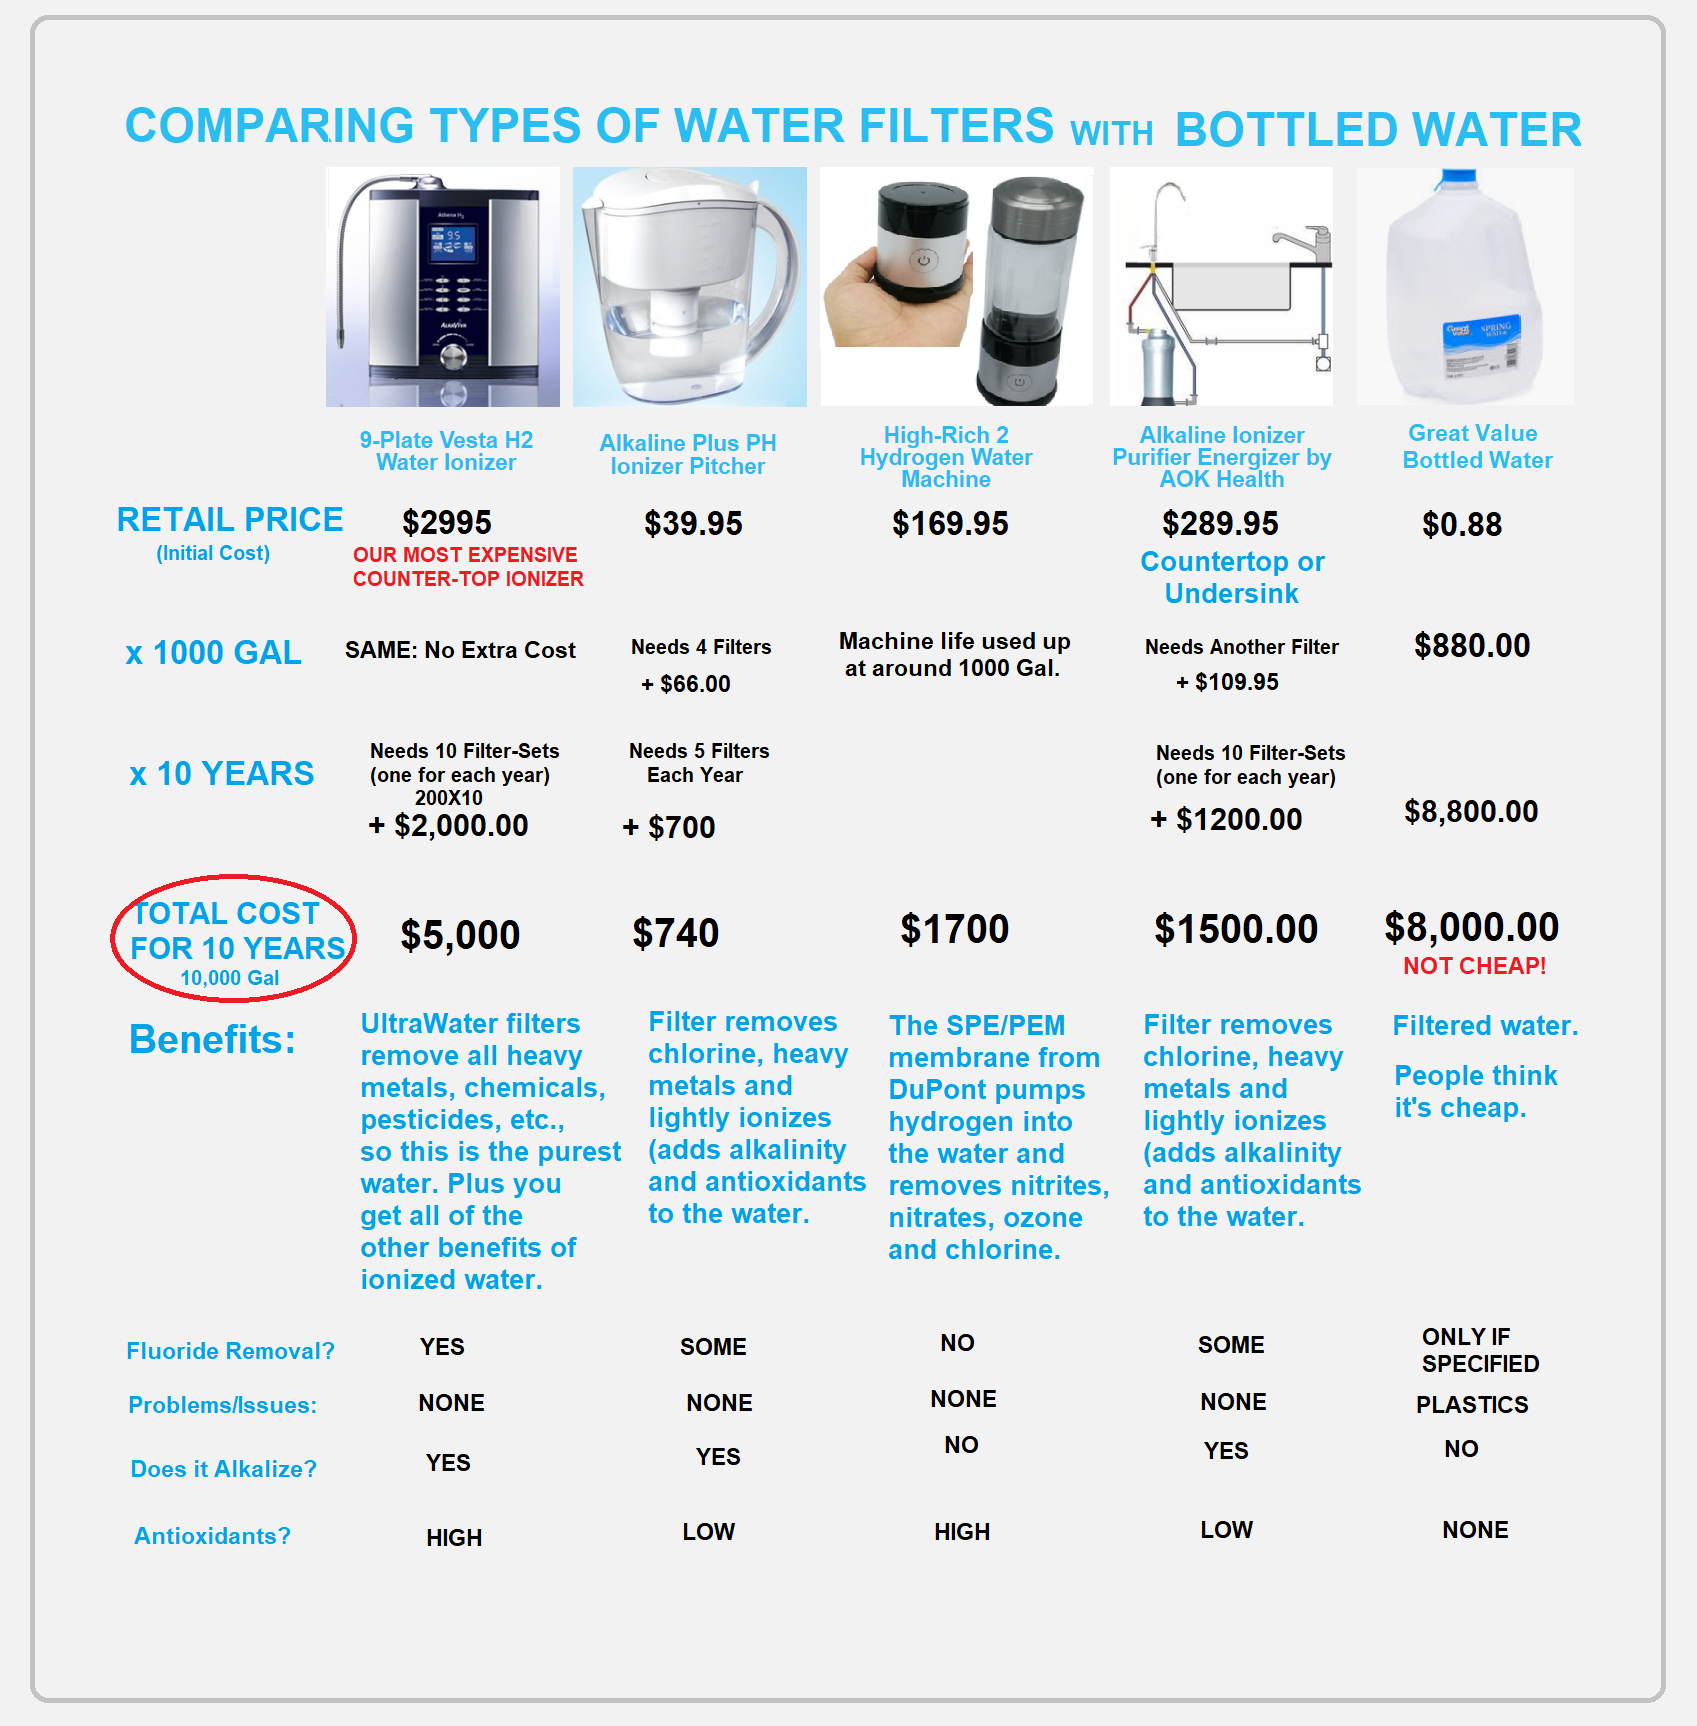 comparing-types-of-water-filters-vs-bottled-water.png